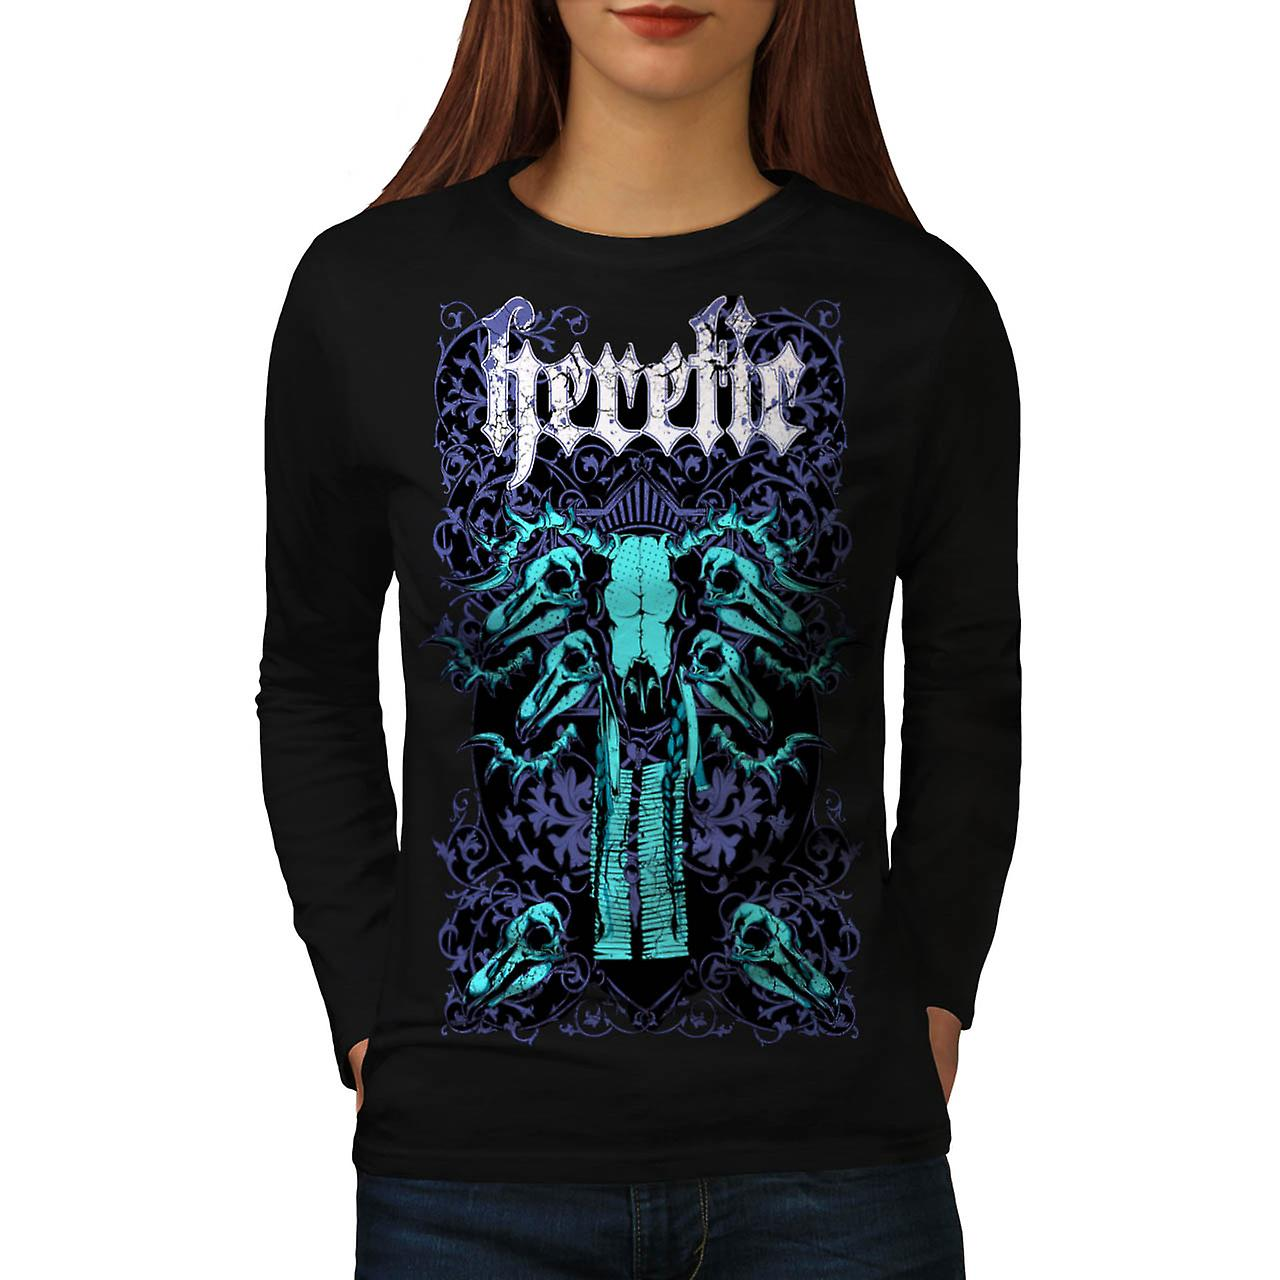 Eretico Monster inferno teschio gigante donne manica lunga t-shirt nero | Wellcoda